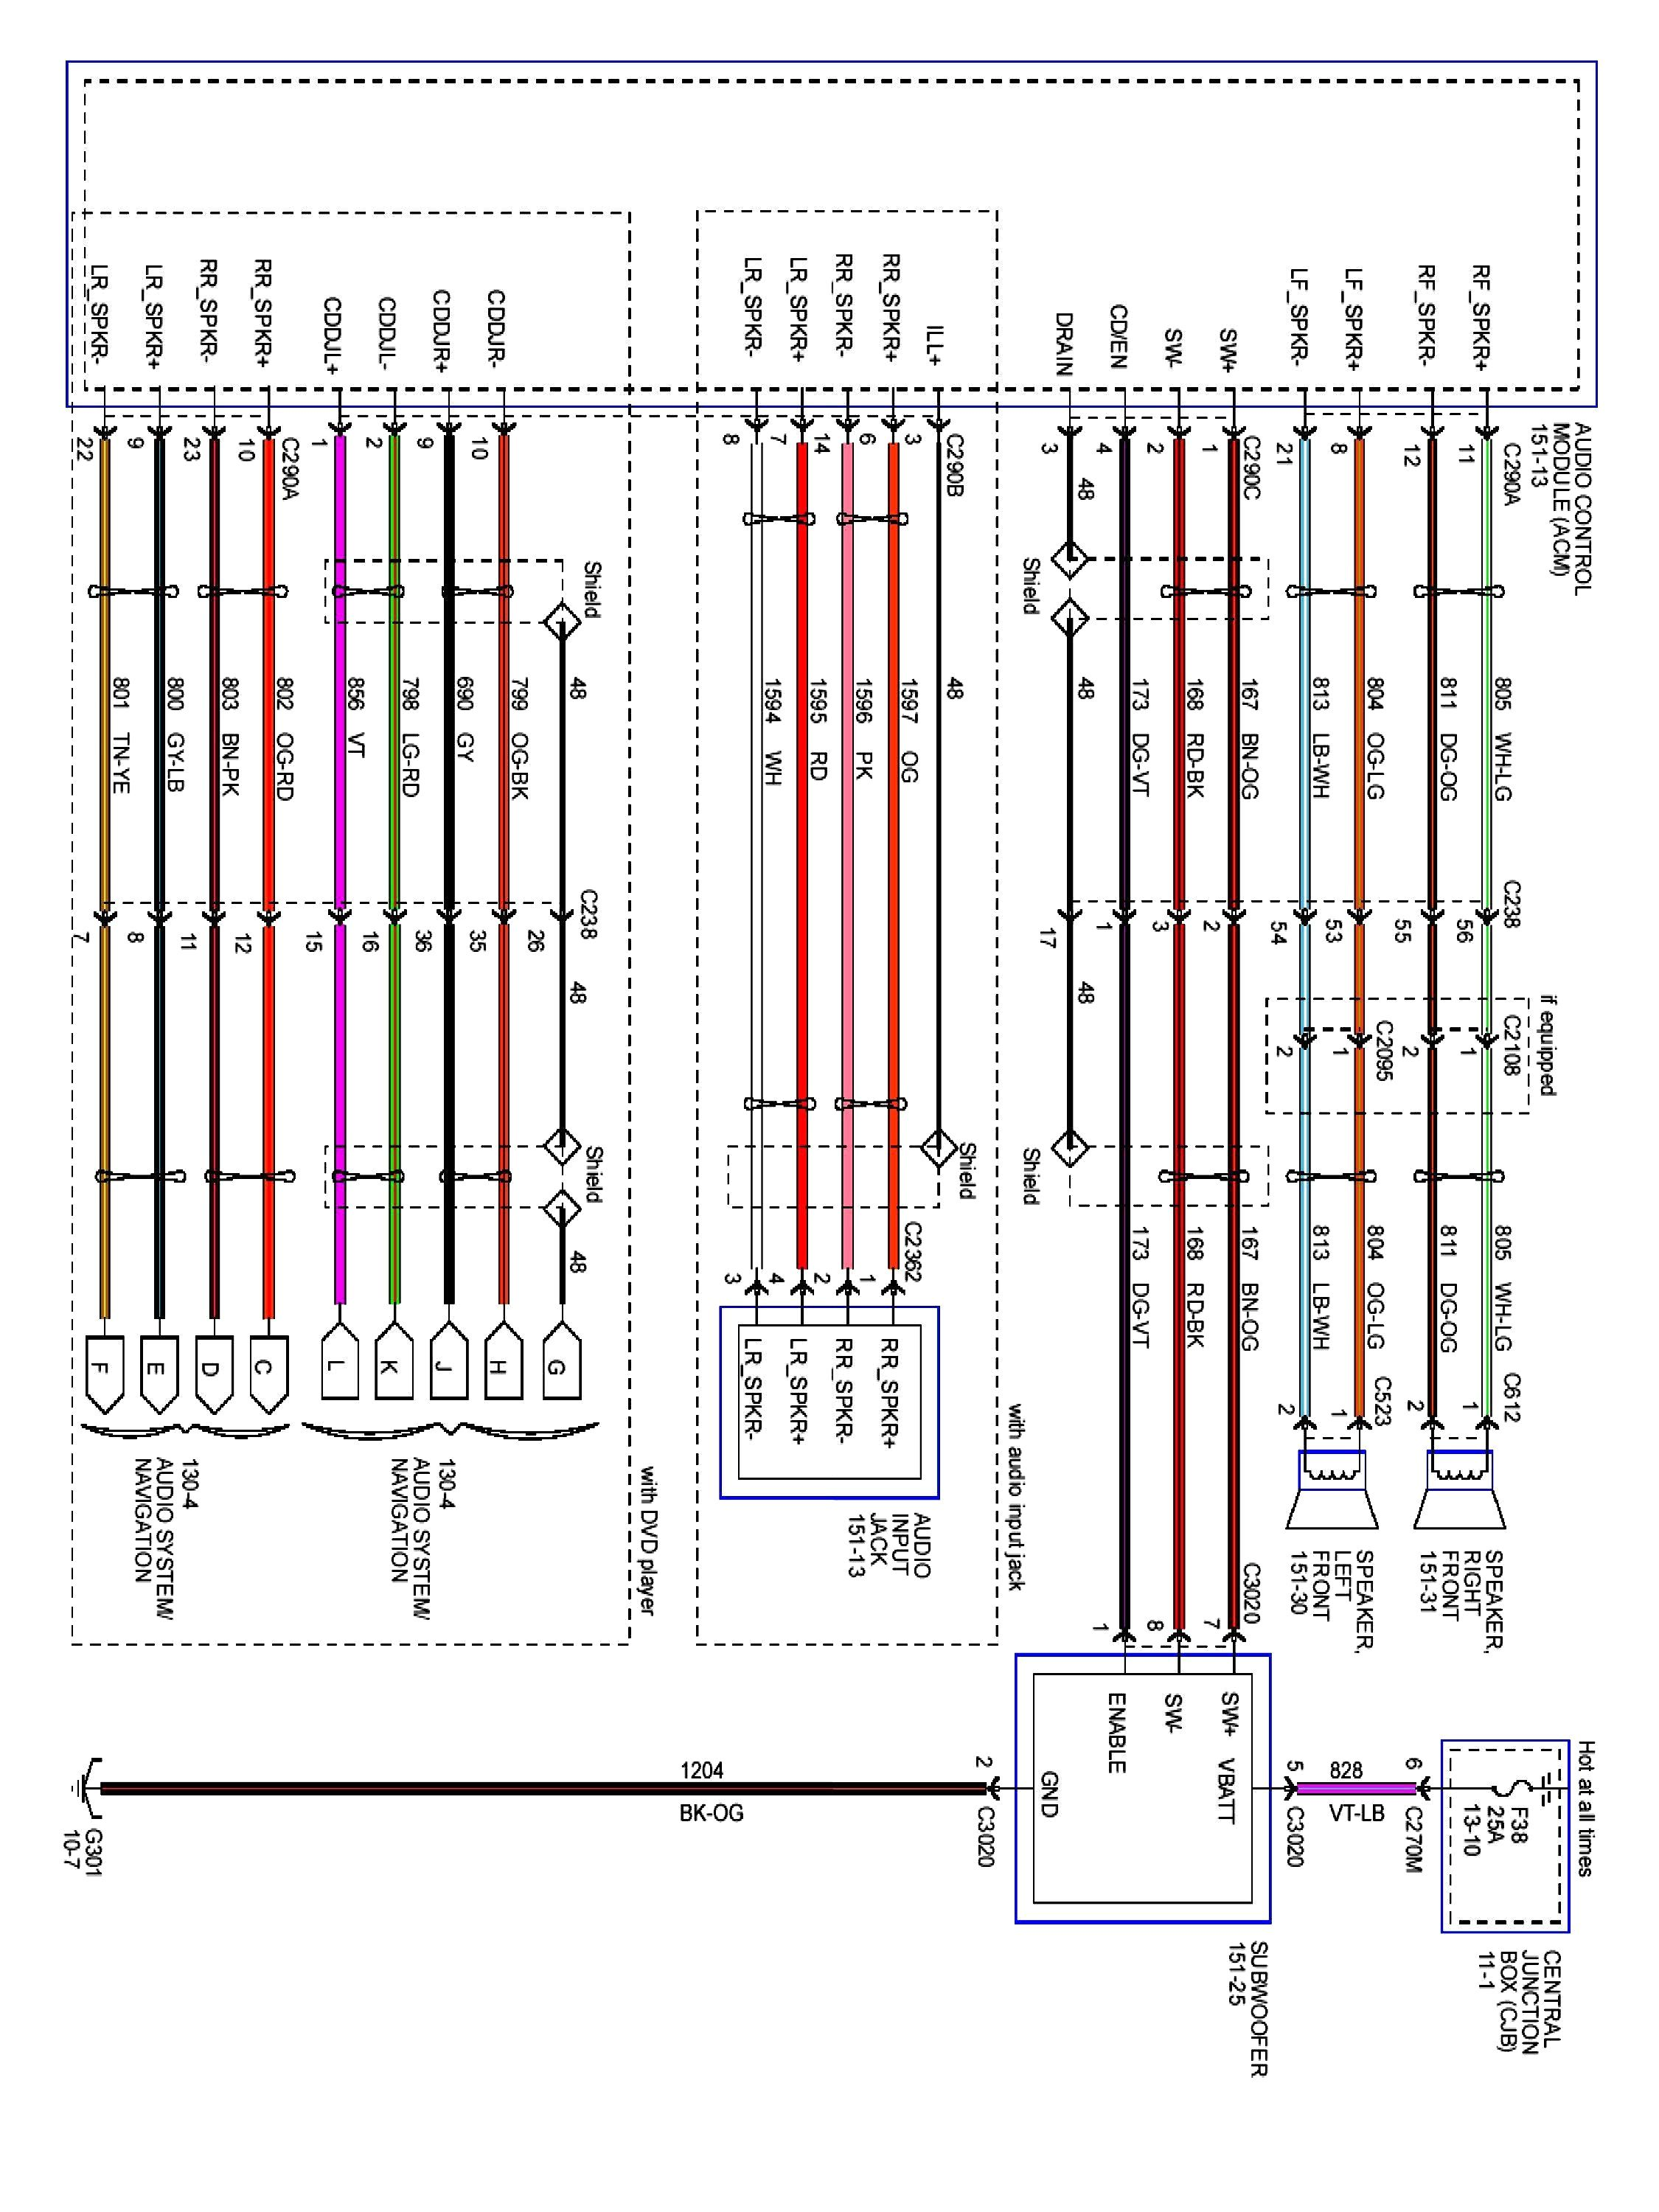 2001 Ford Taurus Stereo Wiring Diagram 2000 At 2004 Ford F150 Ford Expedition Diagram